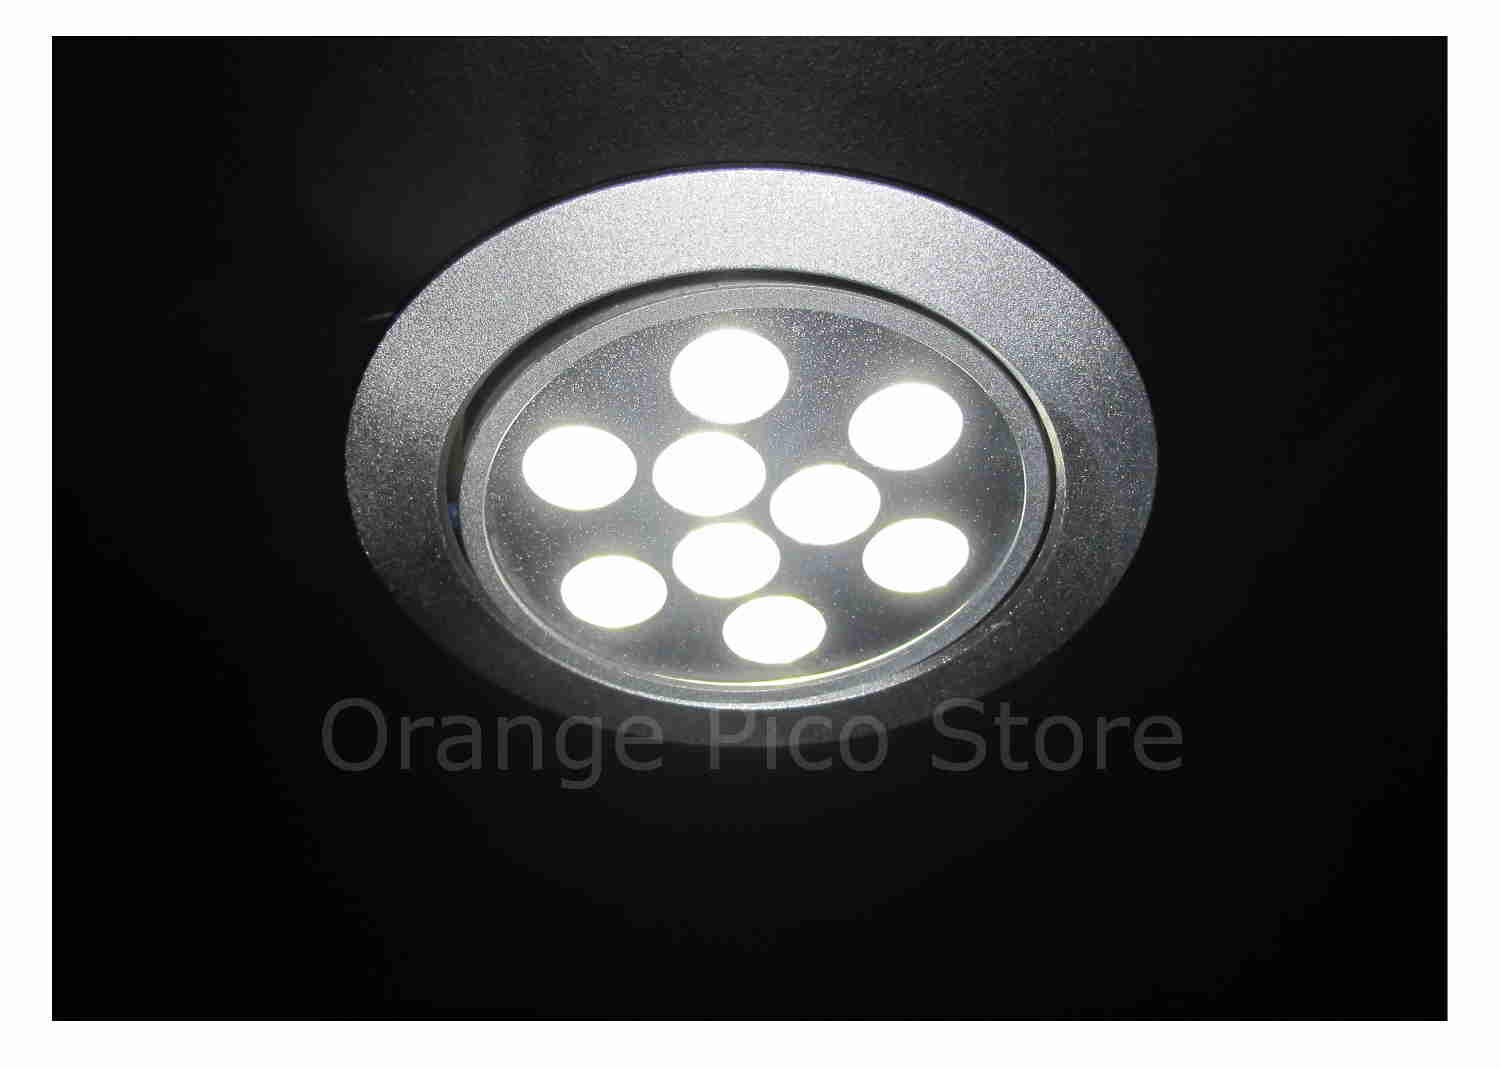 Orange pico store equipment co all display fixtures for retail led dome light fixture option for wallcasetower arubaitofo Choice Image